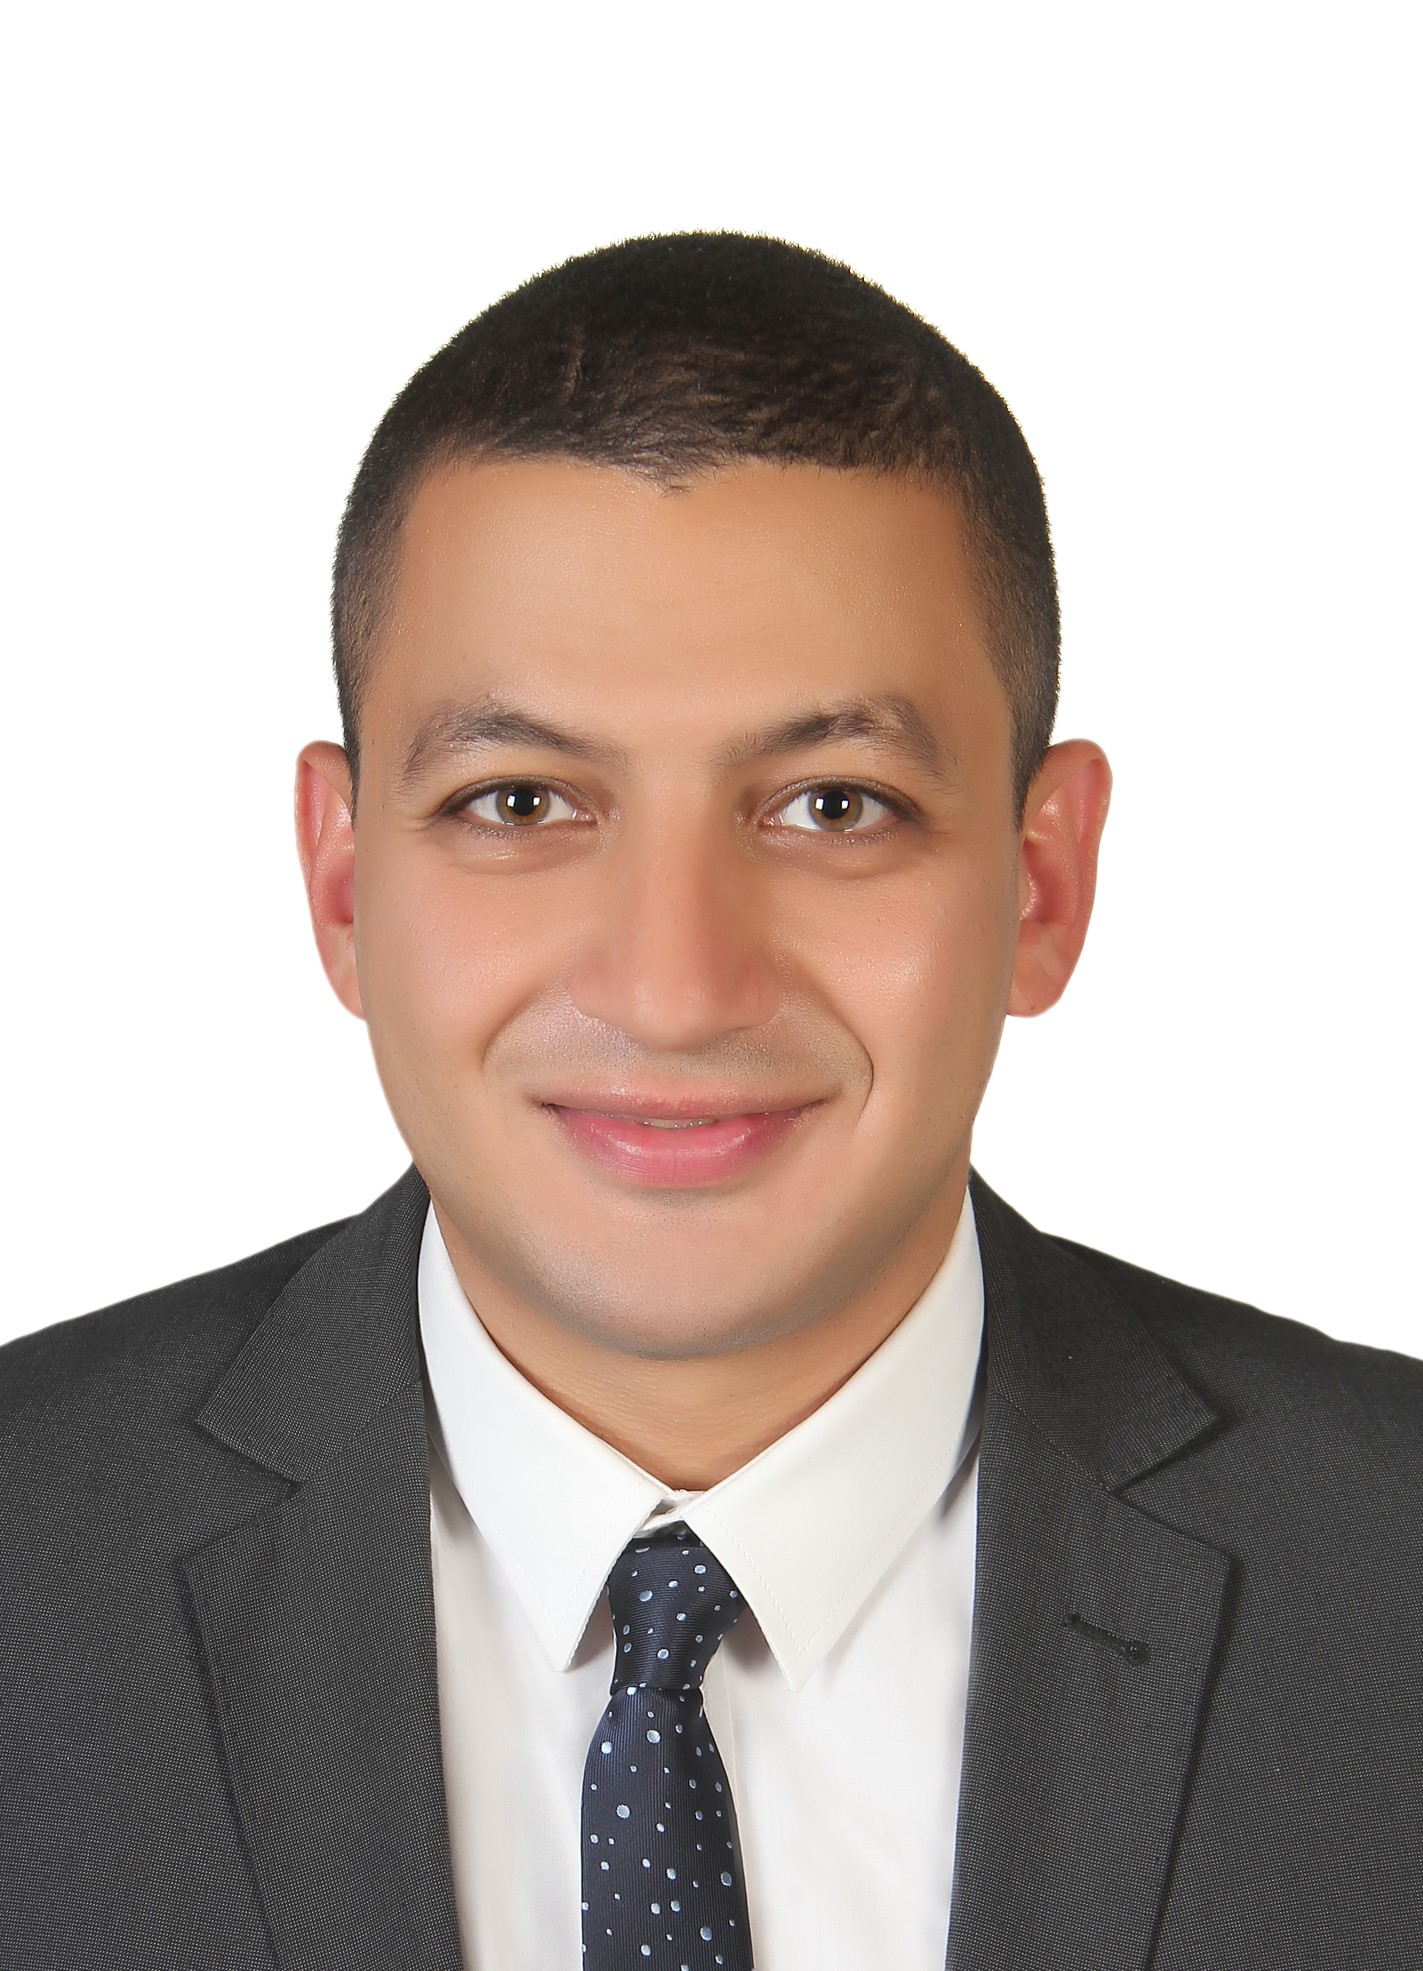 Windenergie in Ägypten, Interview mit Ramy Boushra, informa markets